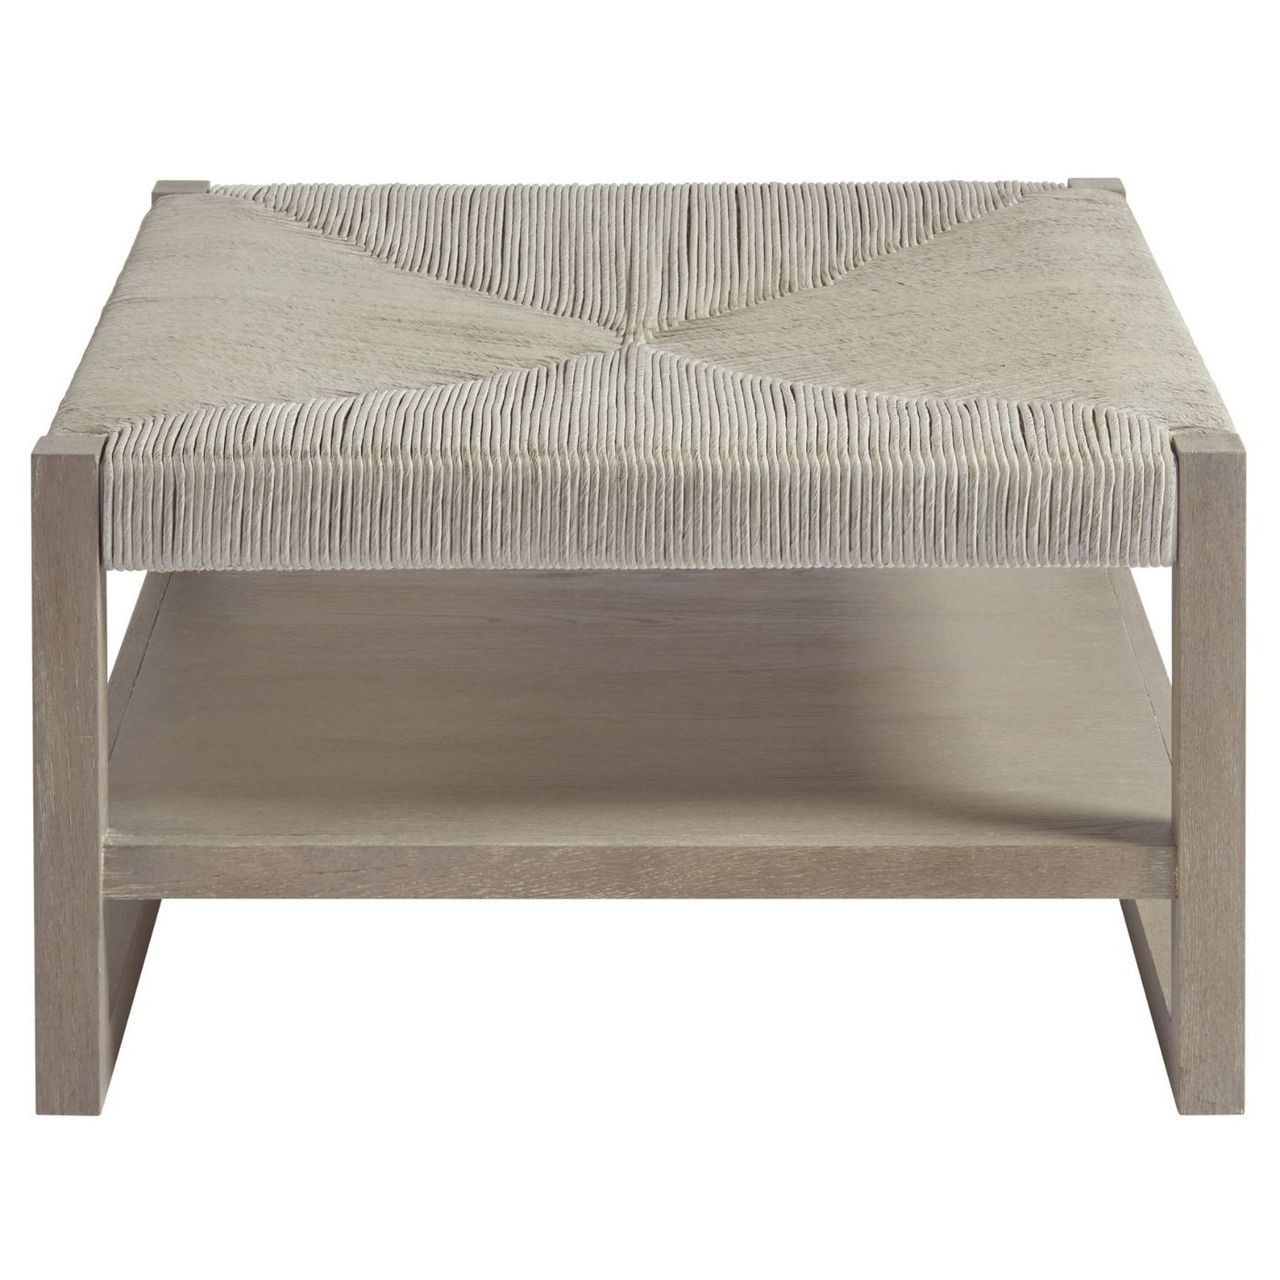 Driftwood Simmons Upholstery Square MTN Cocktail Table